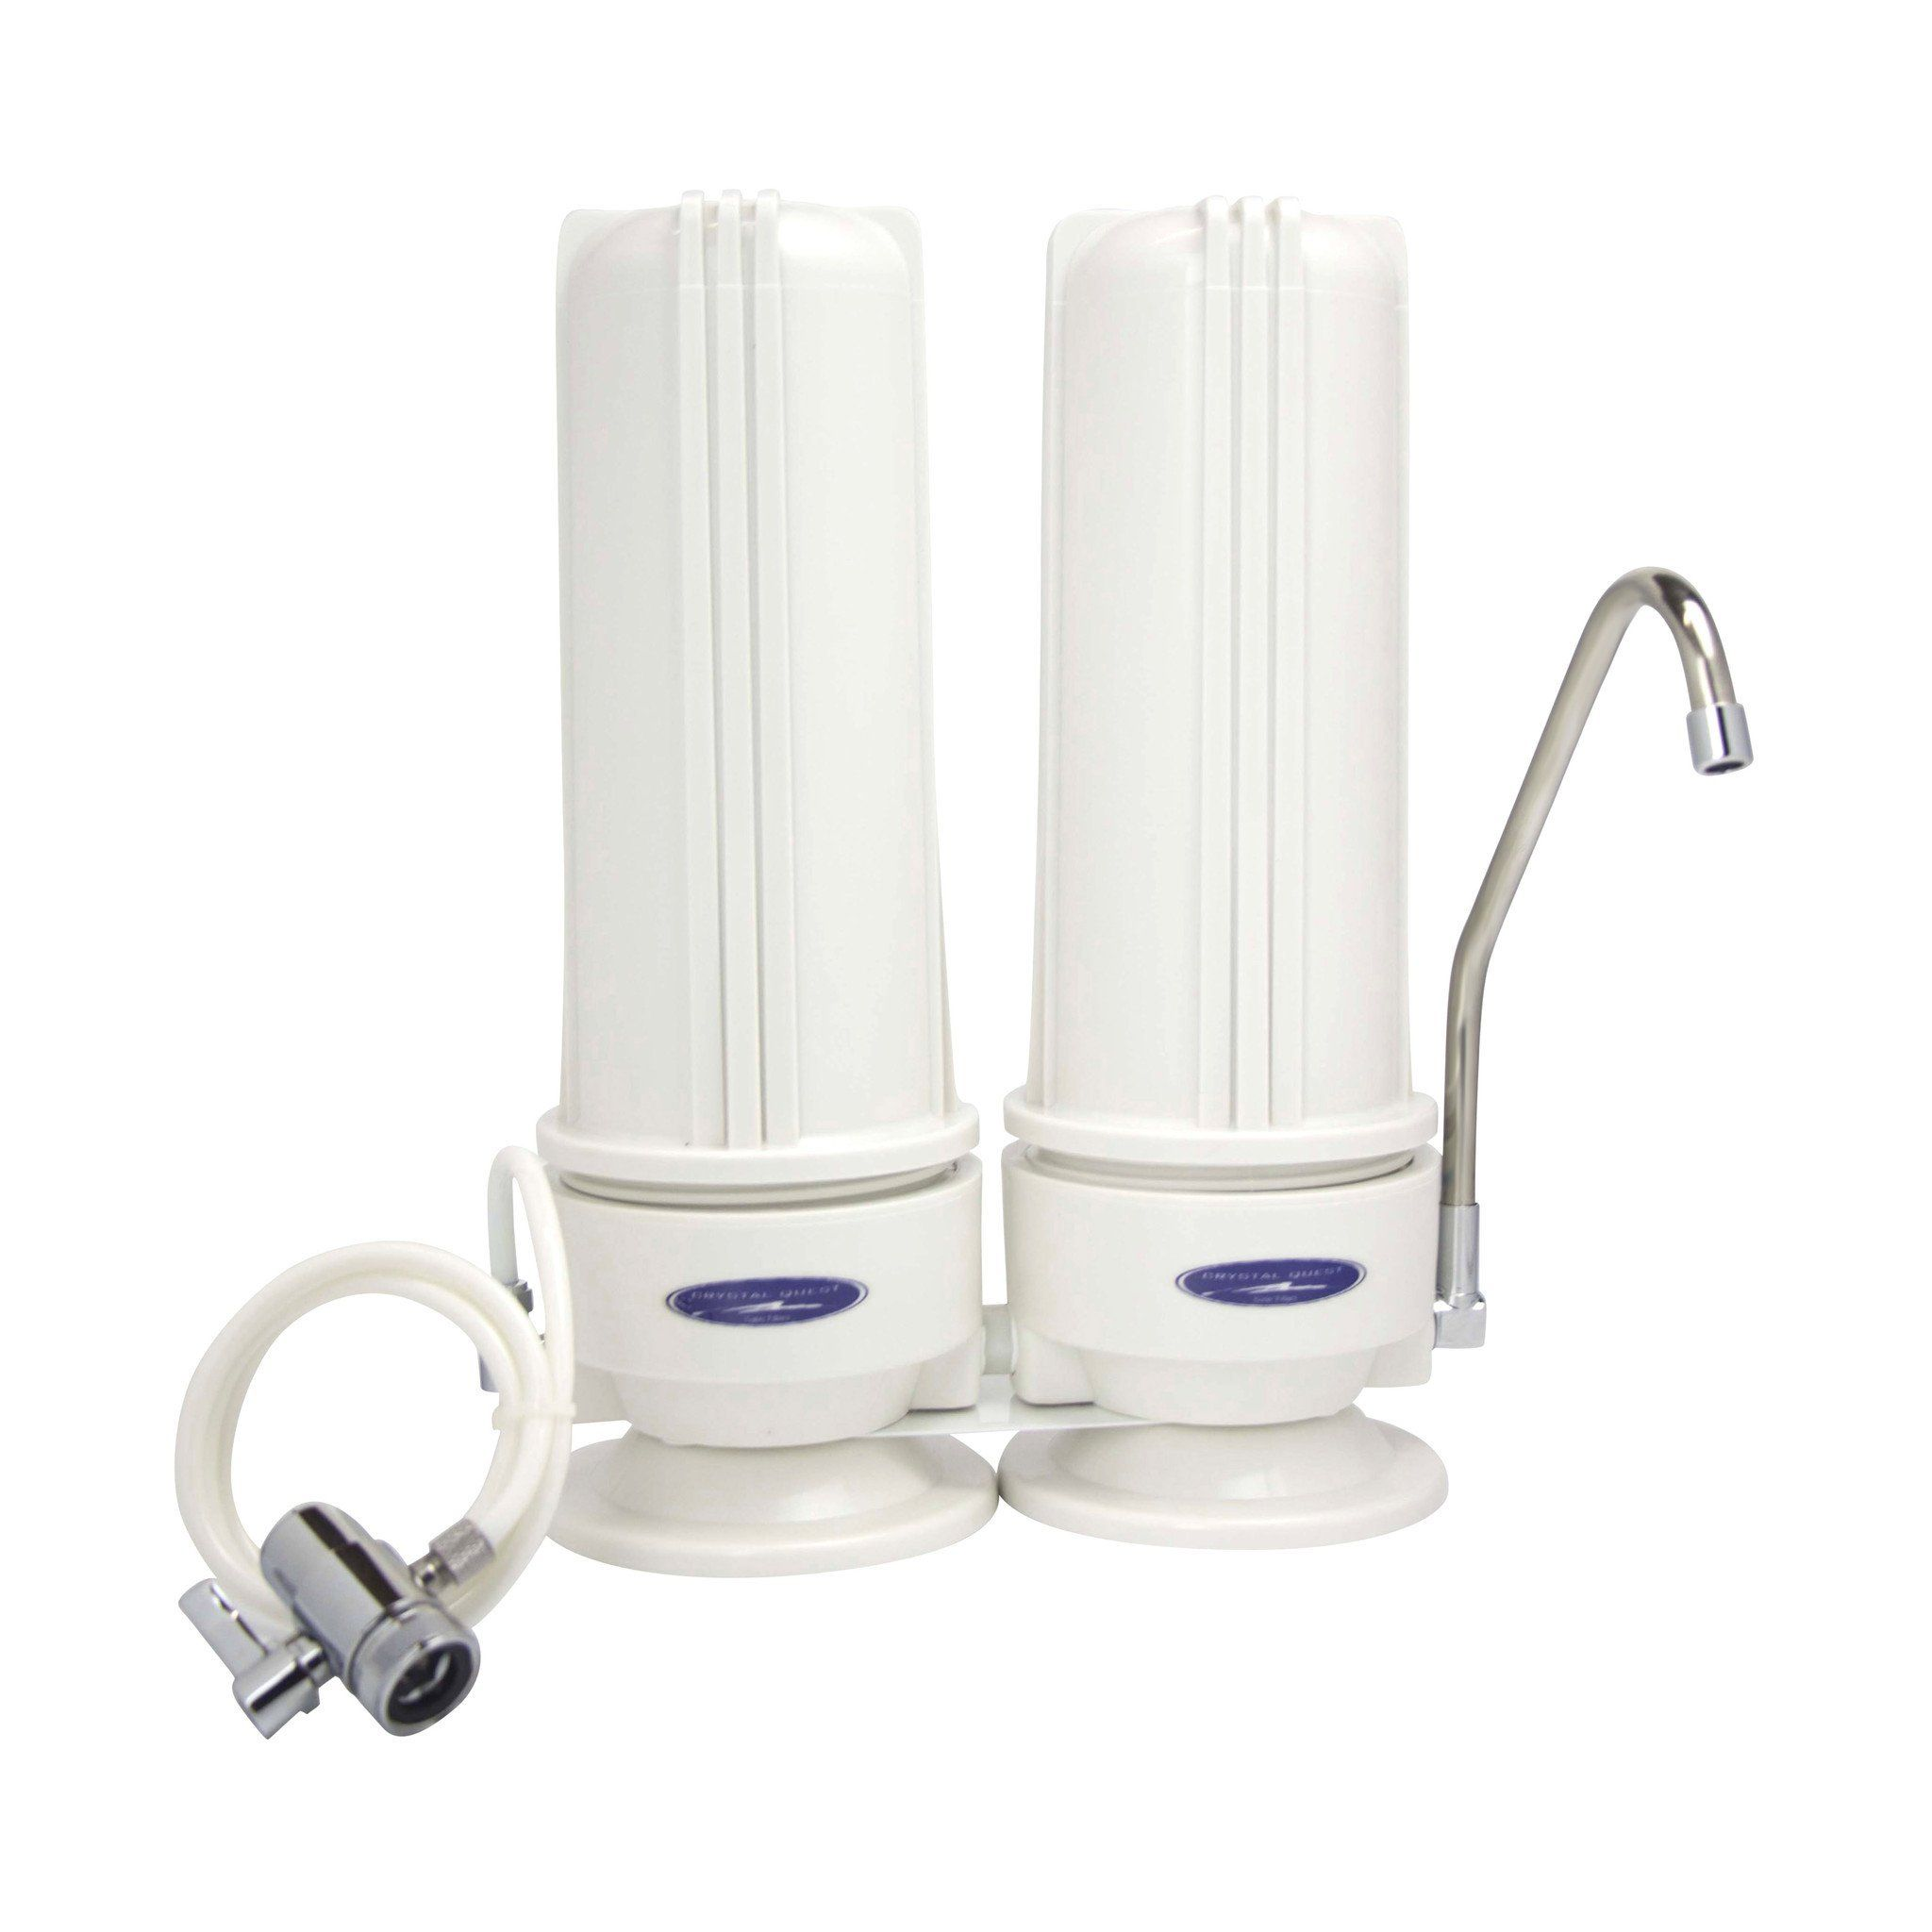 Nitrate Countertop Water Filter System Countertop Water Filter